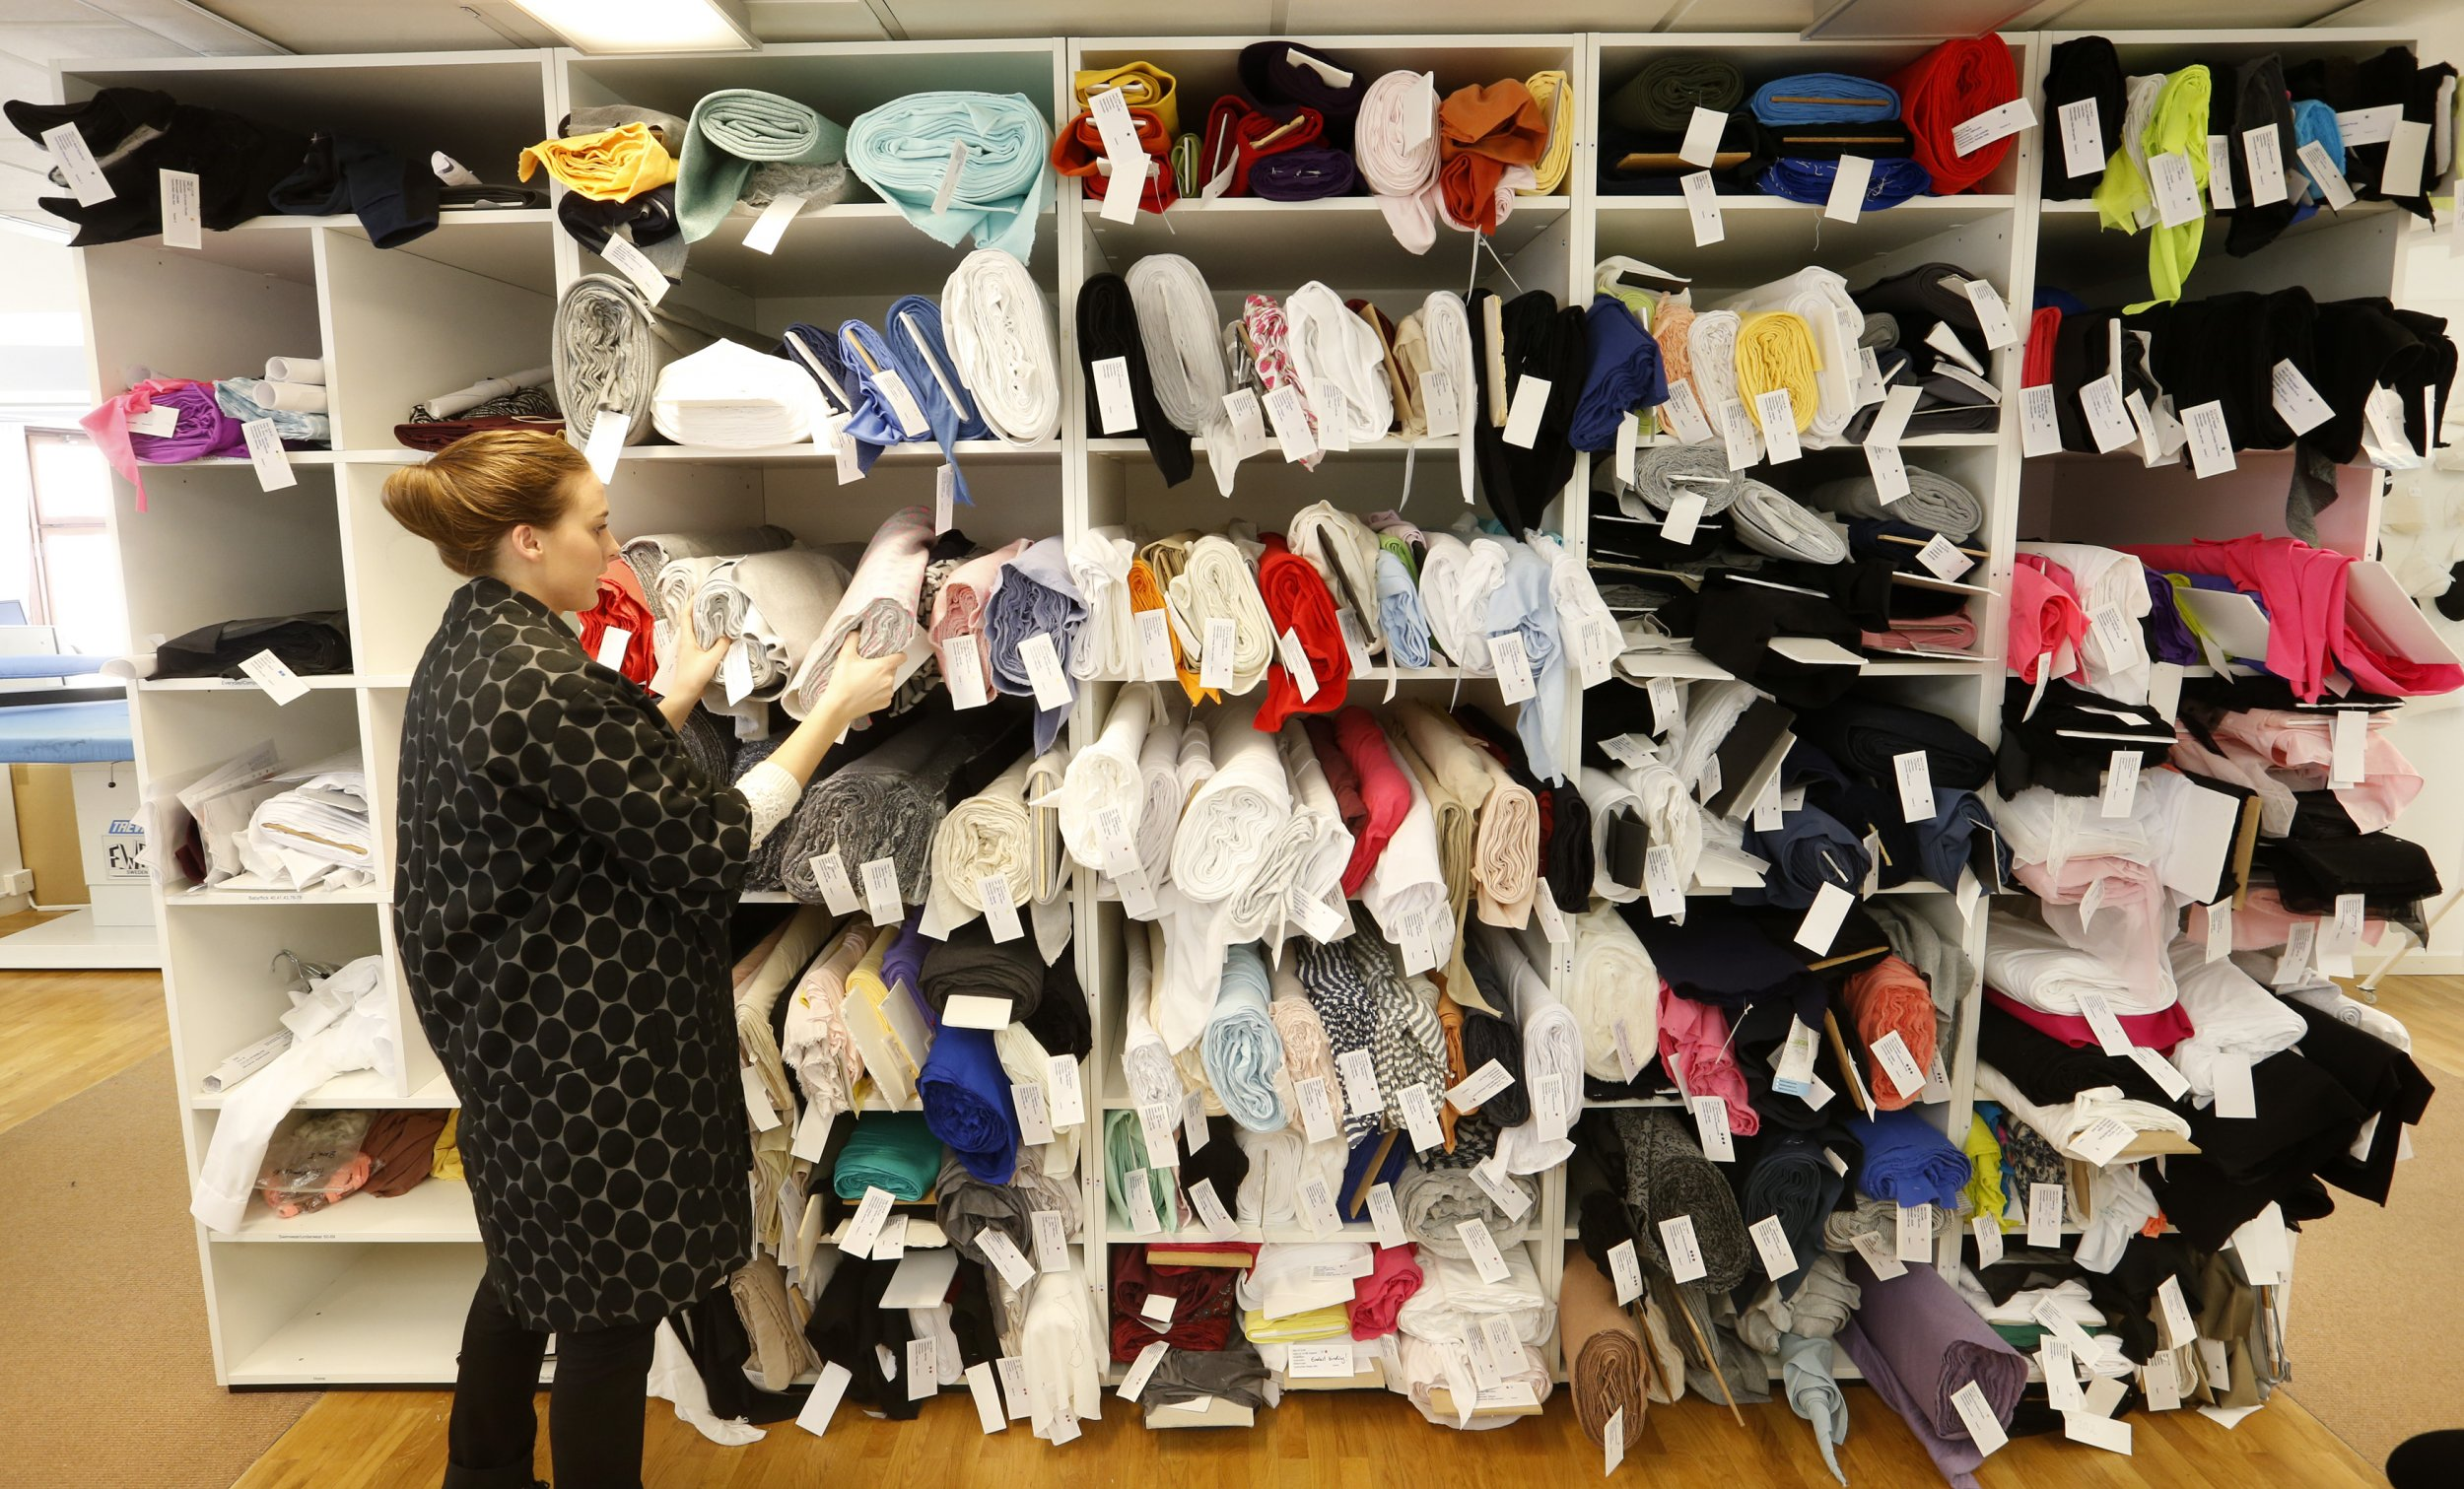 The Small Changes The Fashion Industry Could Make To Help The Environment